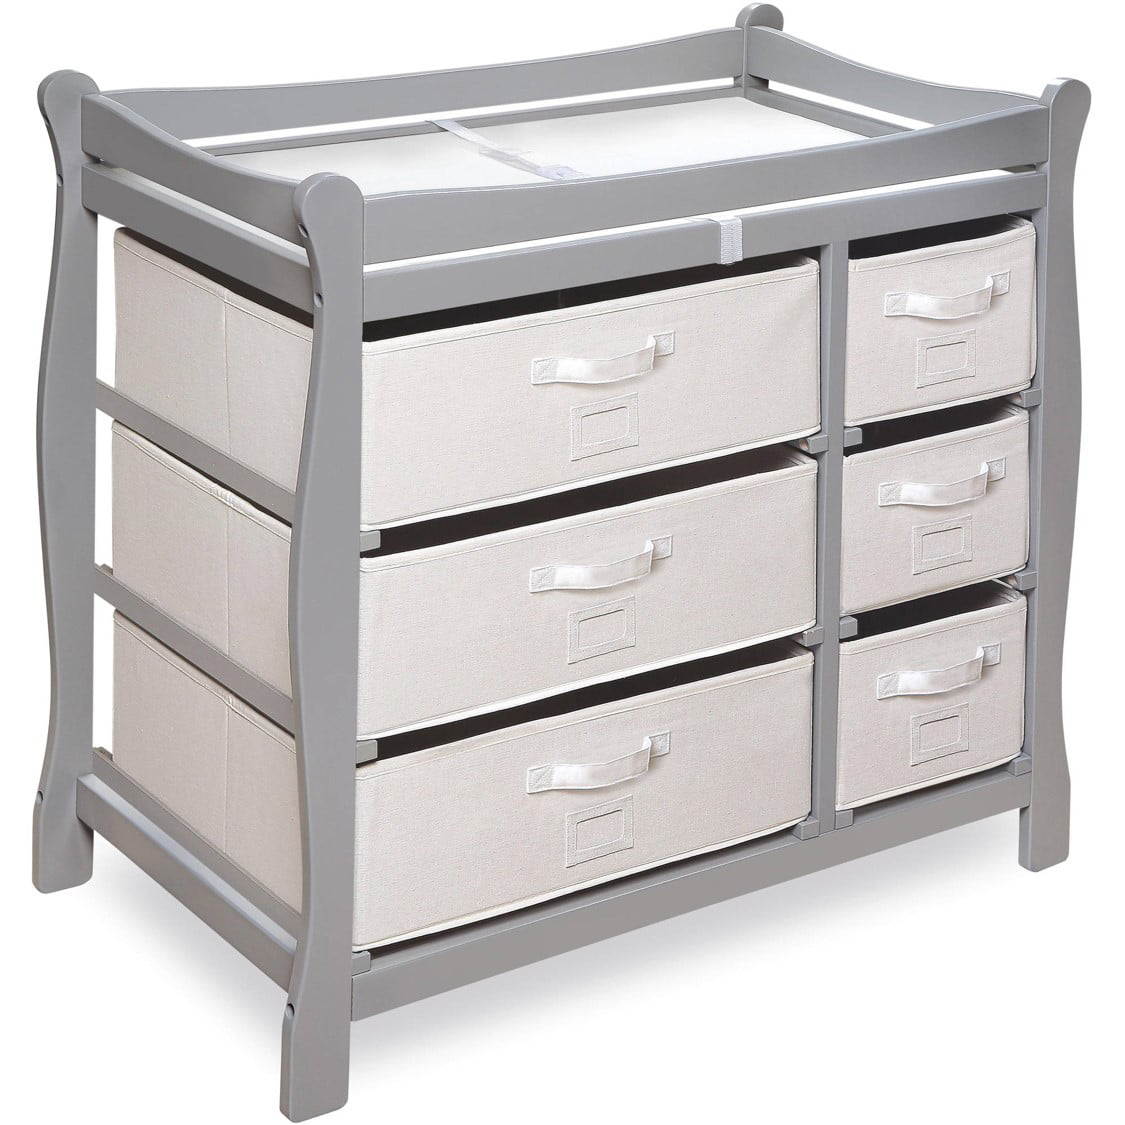 Badger Basket Sleigh Style Changing Table with Six Baskets, Gray by Badger Basket